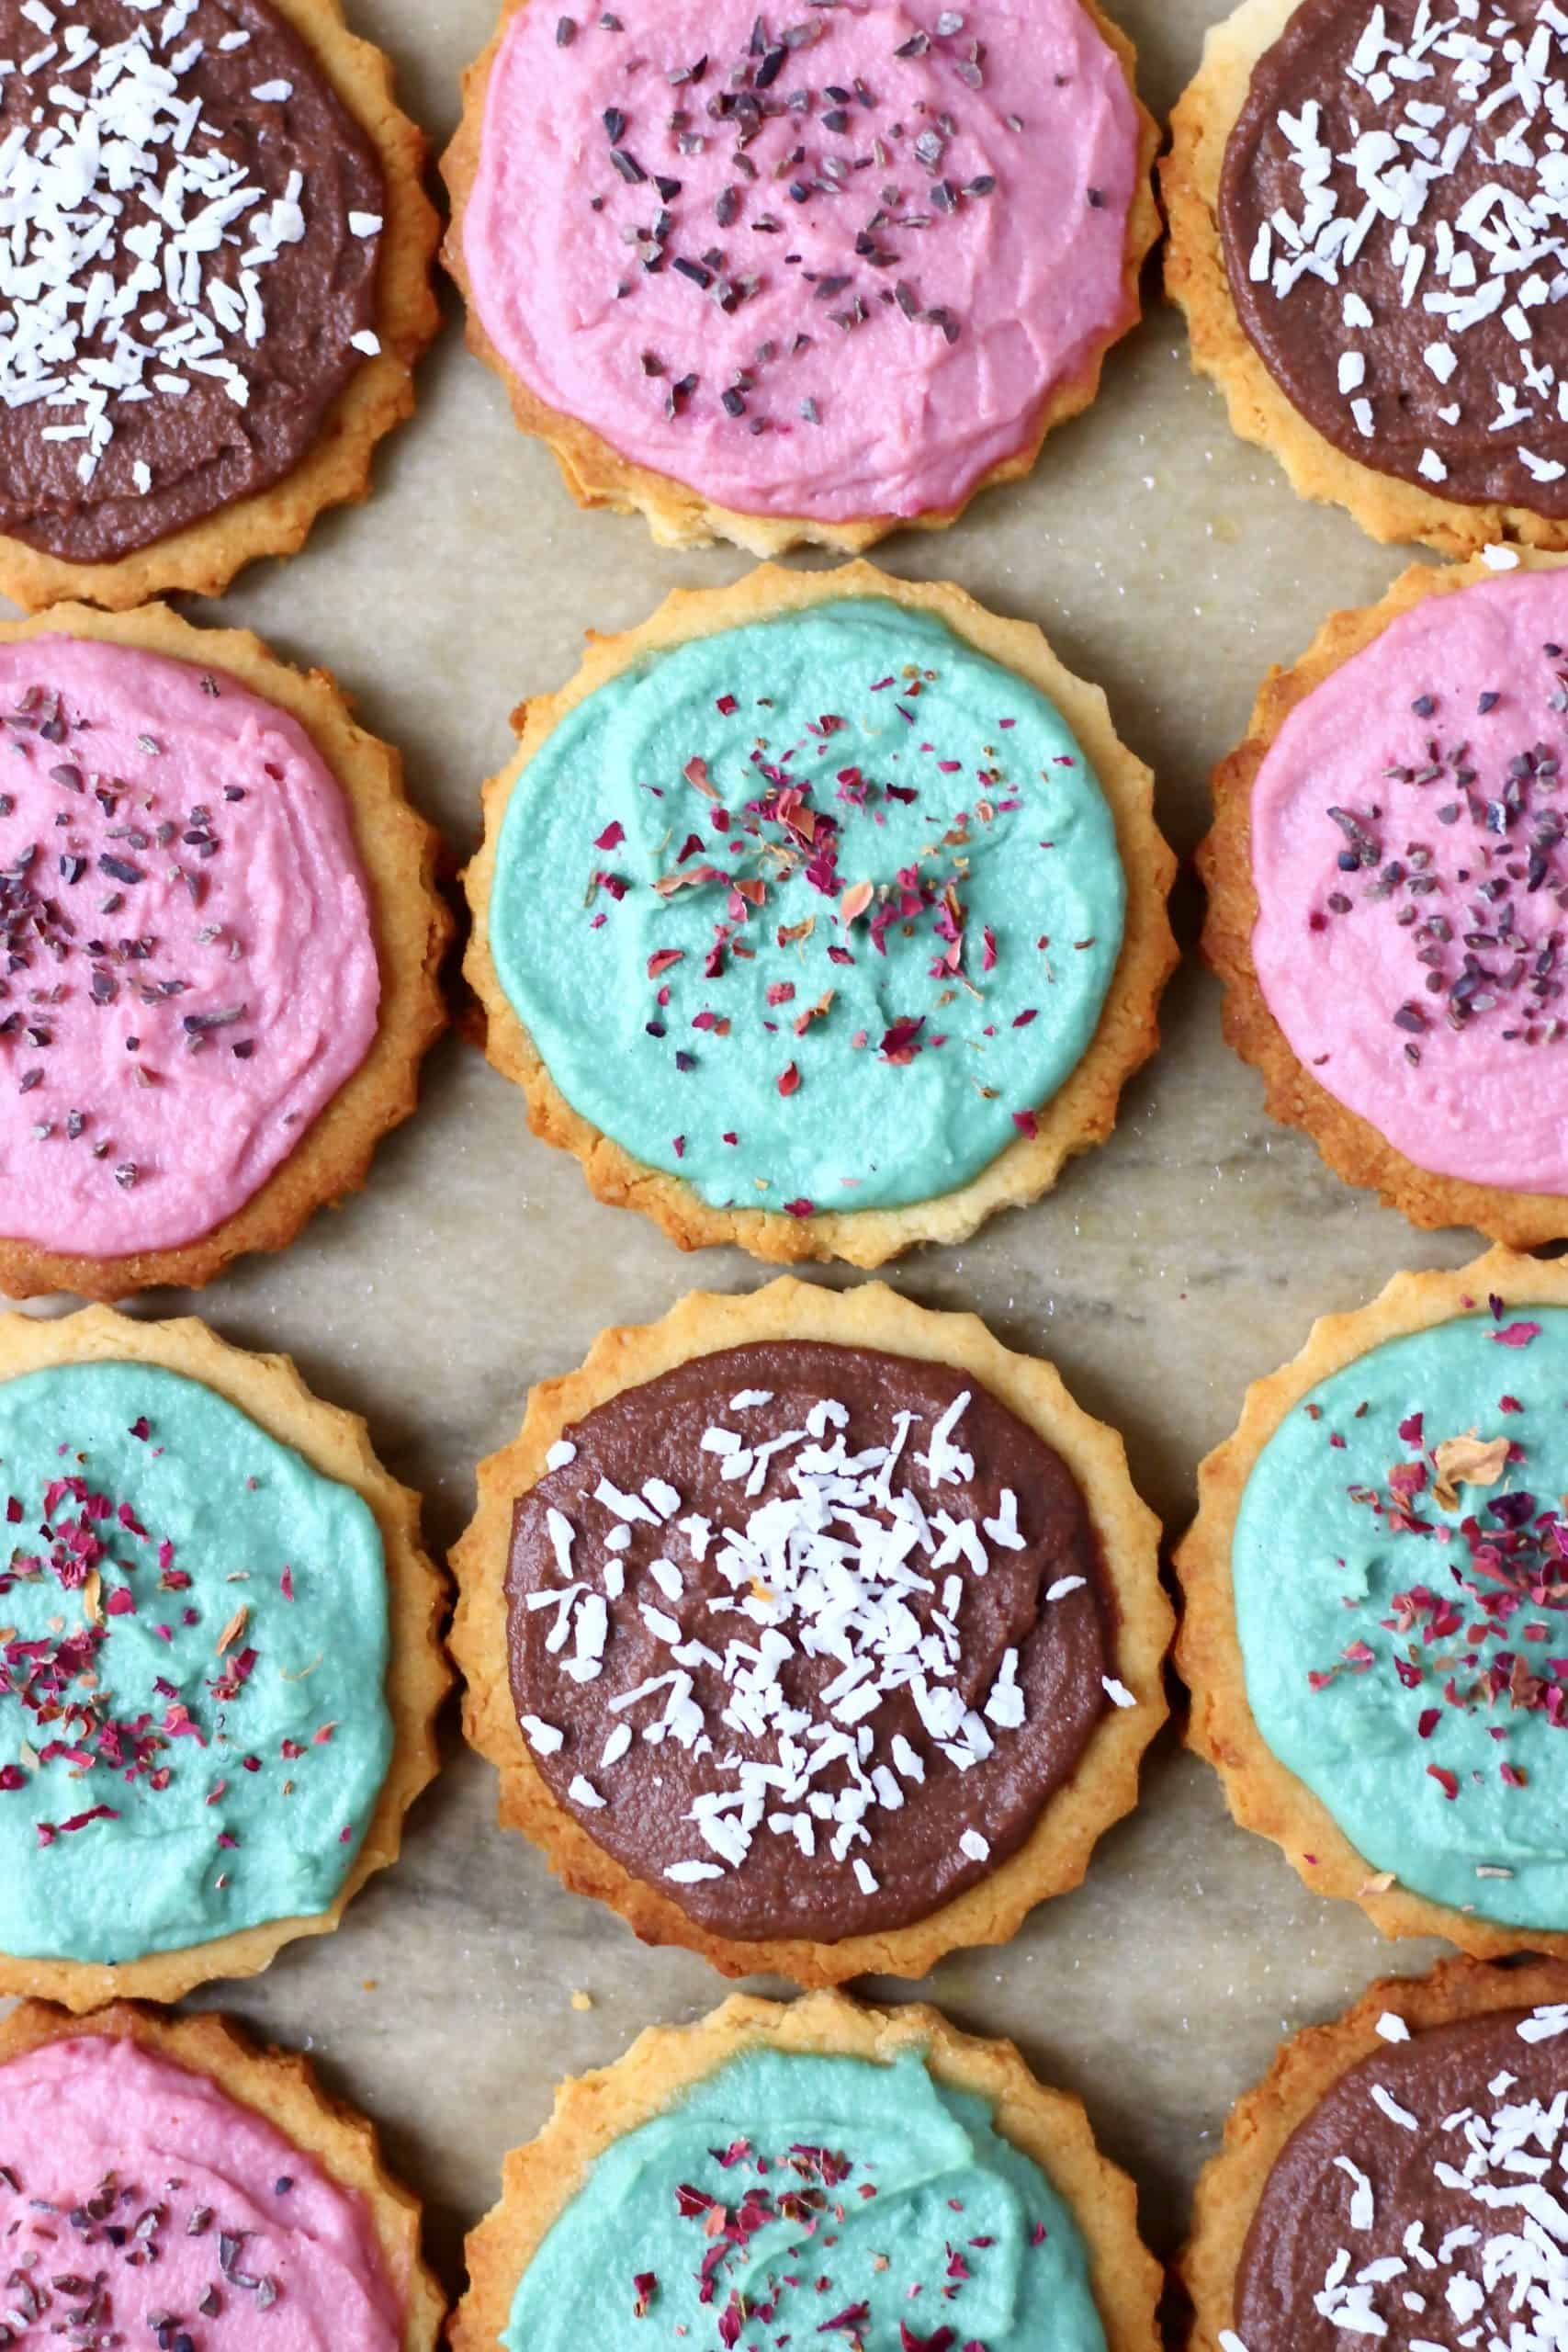 Twelve circular sugar cookies topped with different coloured frosting and sprinkles on a sheet of brown baking paper